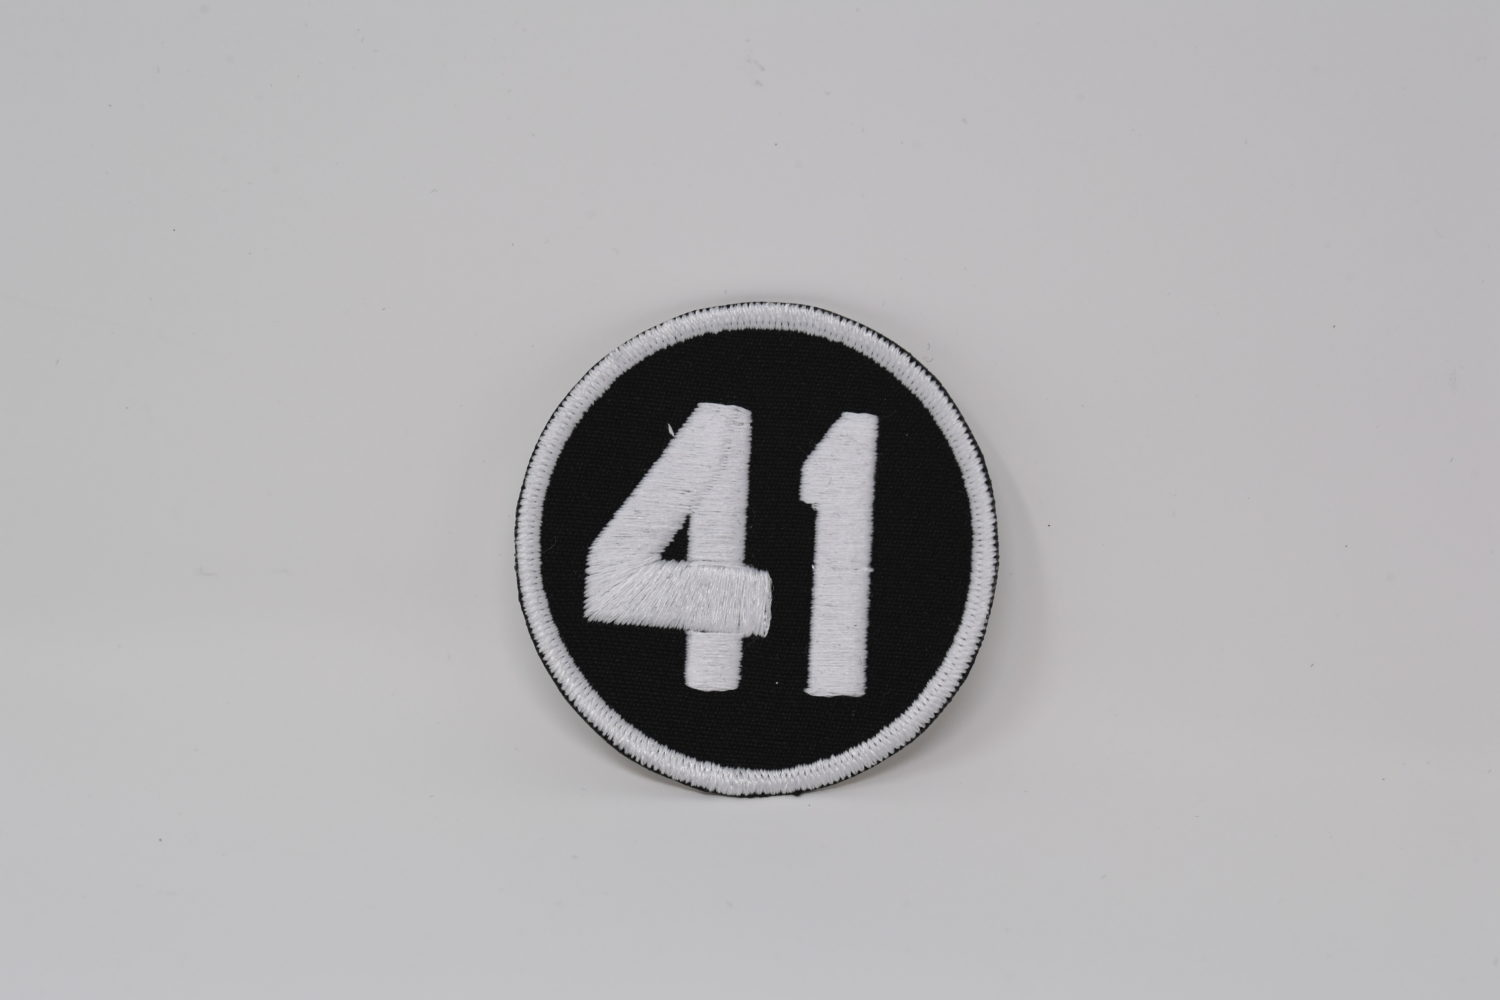 No. 41 Sleeve Patch Worn to Honor Tom Seaver